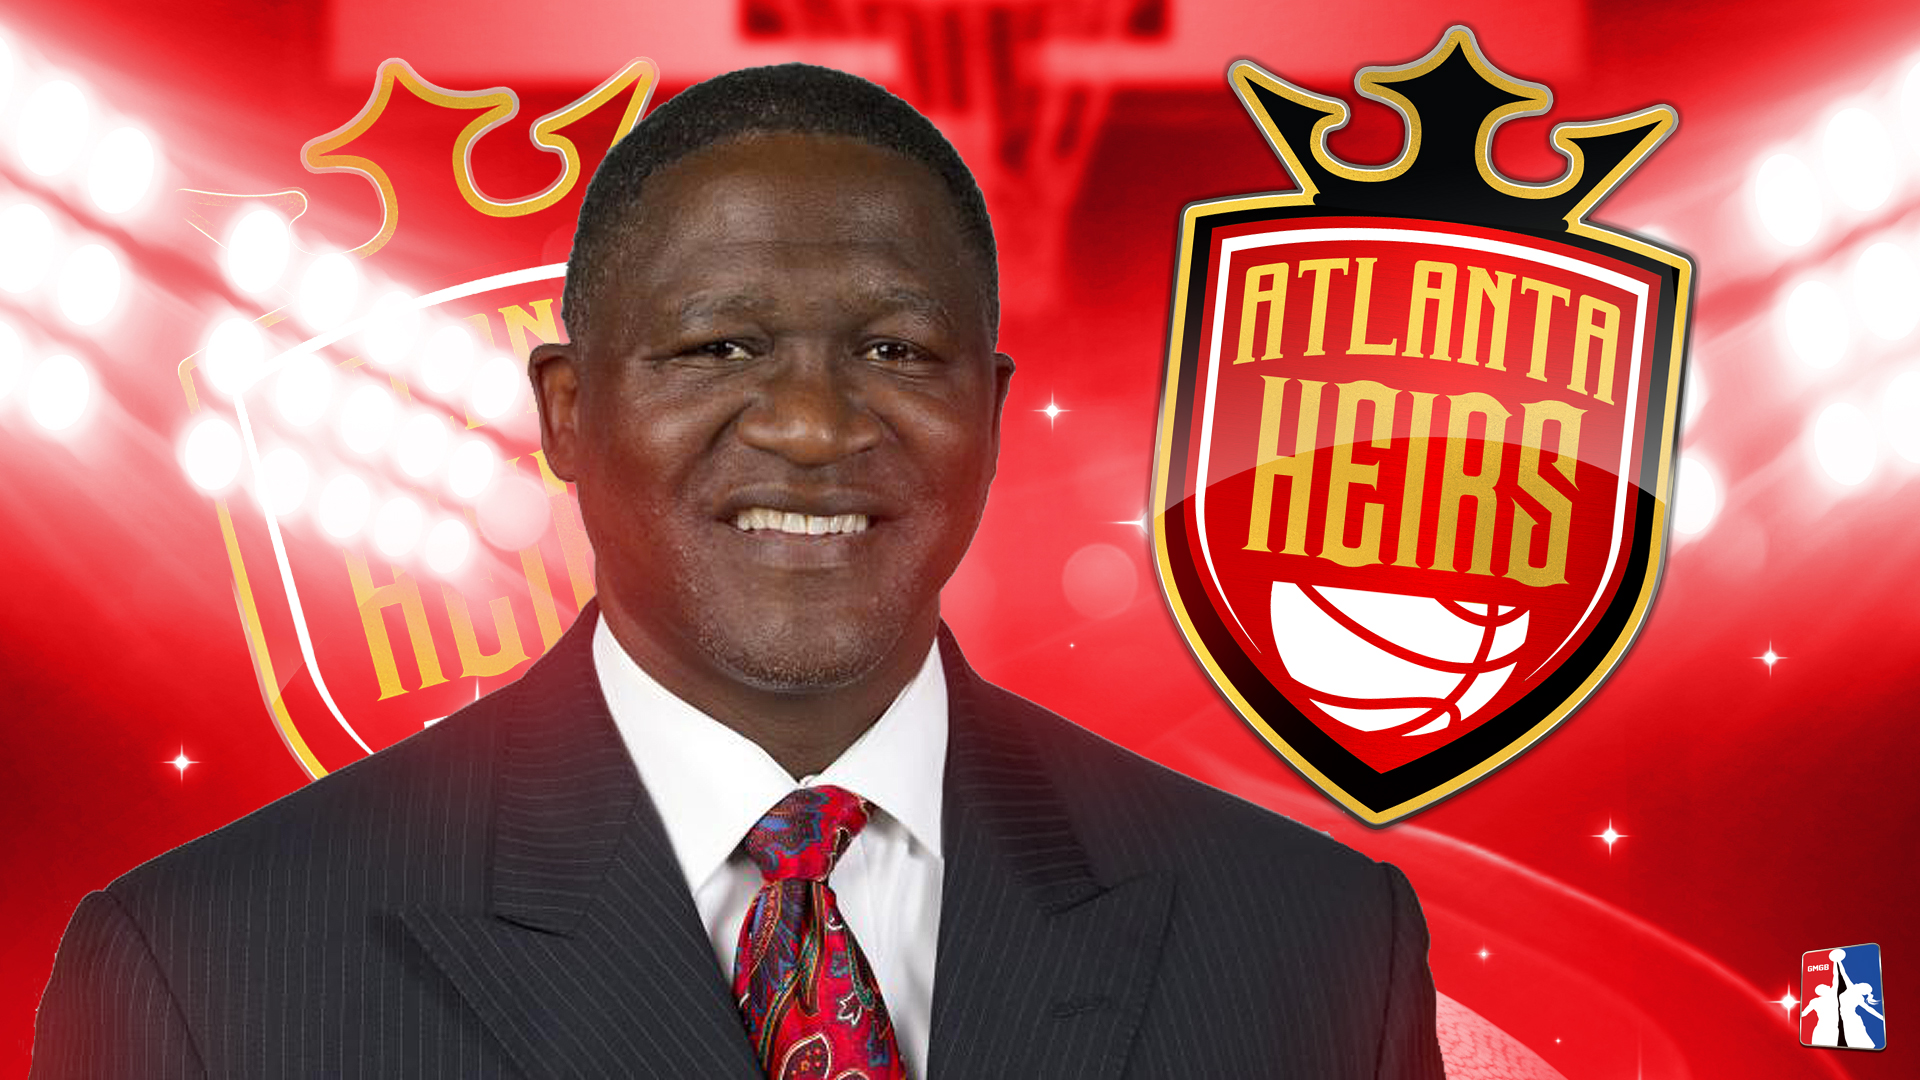 ATLANTA HEIRS SIGNS NATIONAL BASKETBALL HALL OF FAMER DOMINIQUE